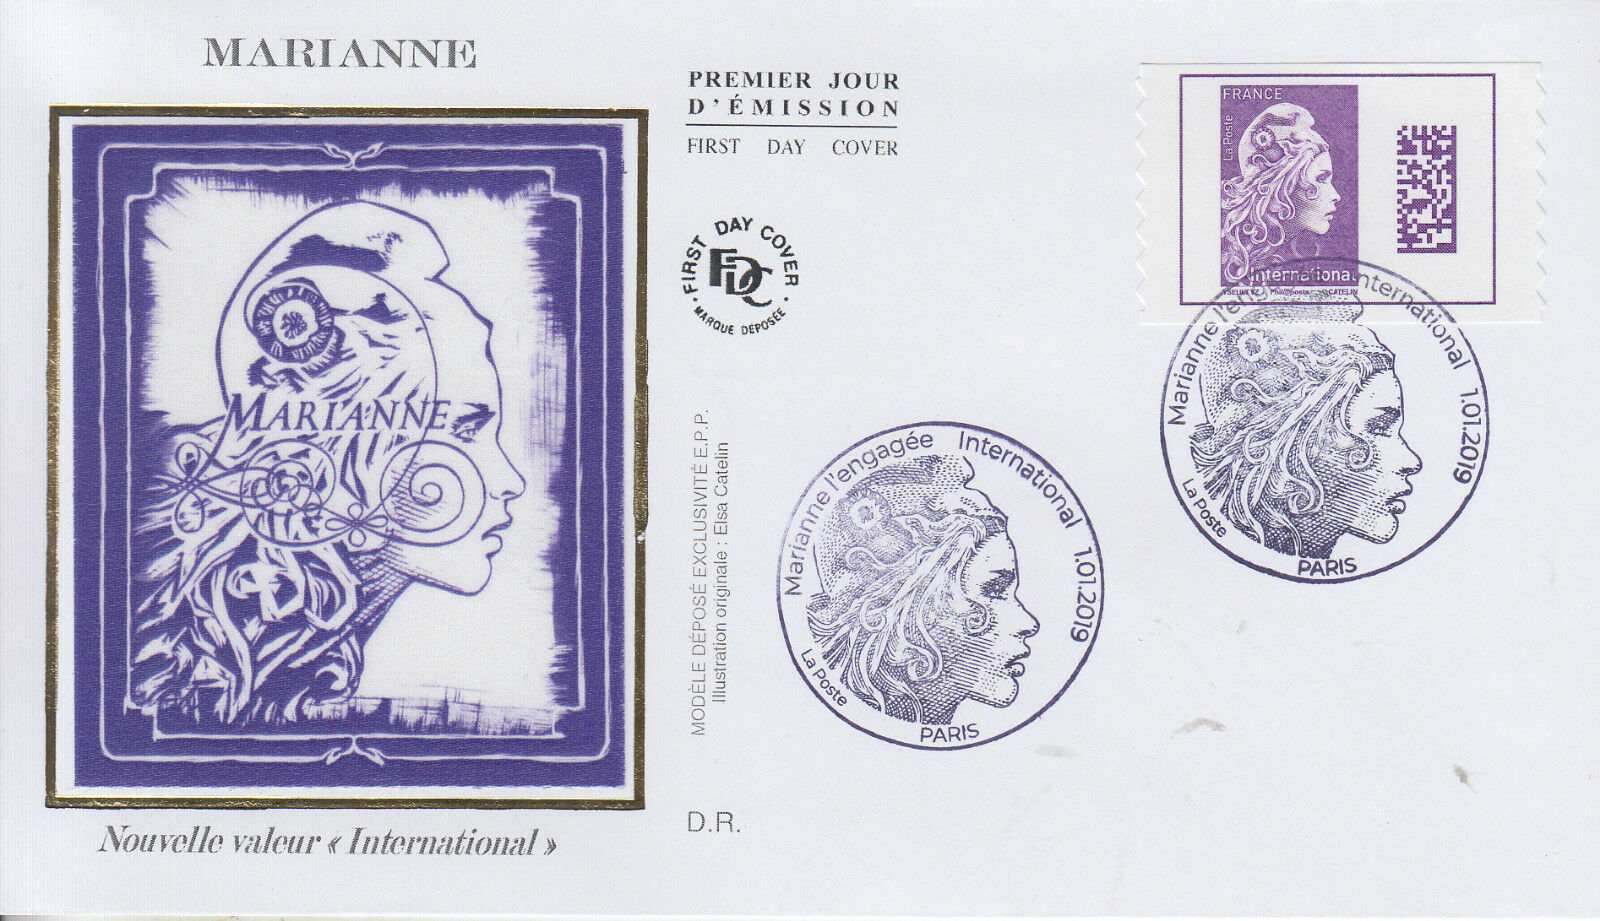 France - Marianne Definitive, International Rate (January 1, 2019) first day cover